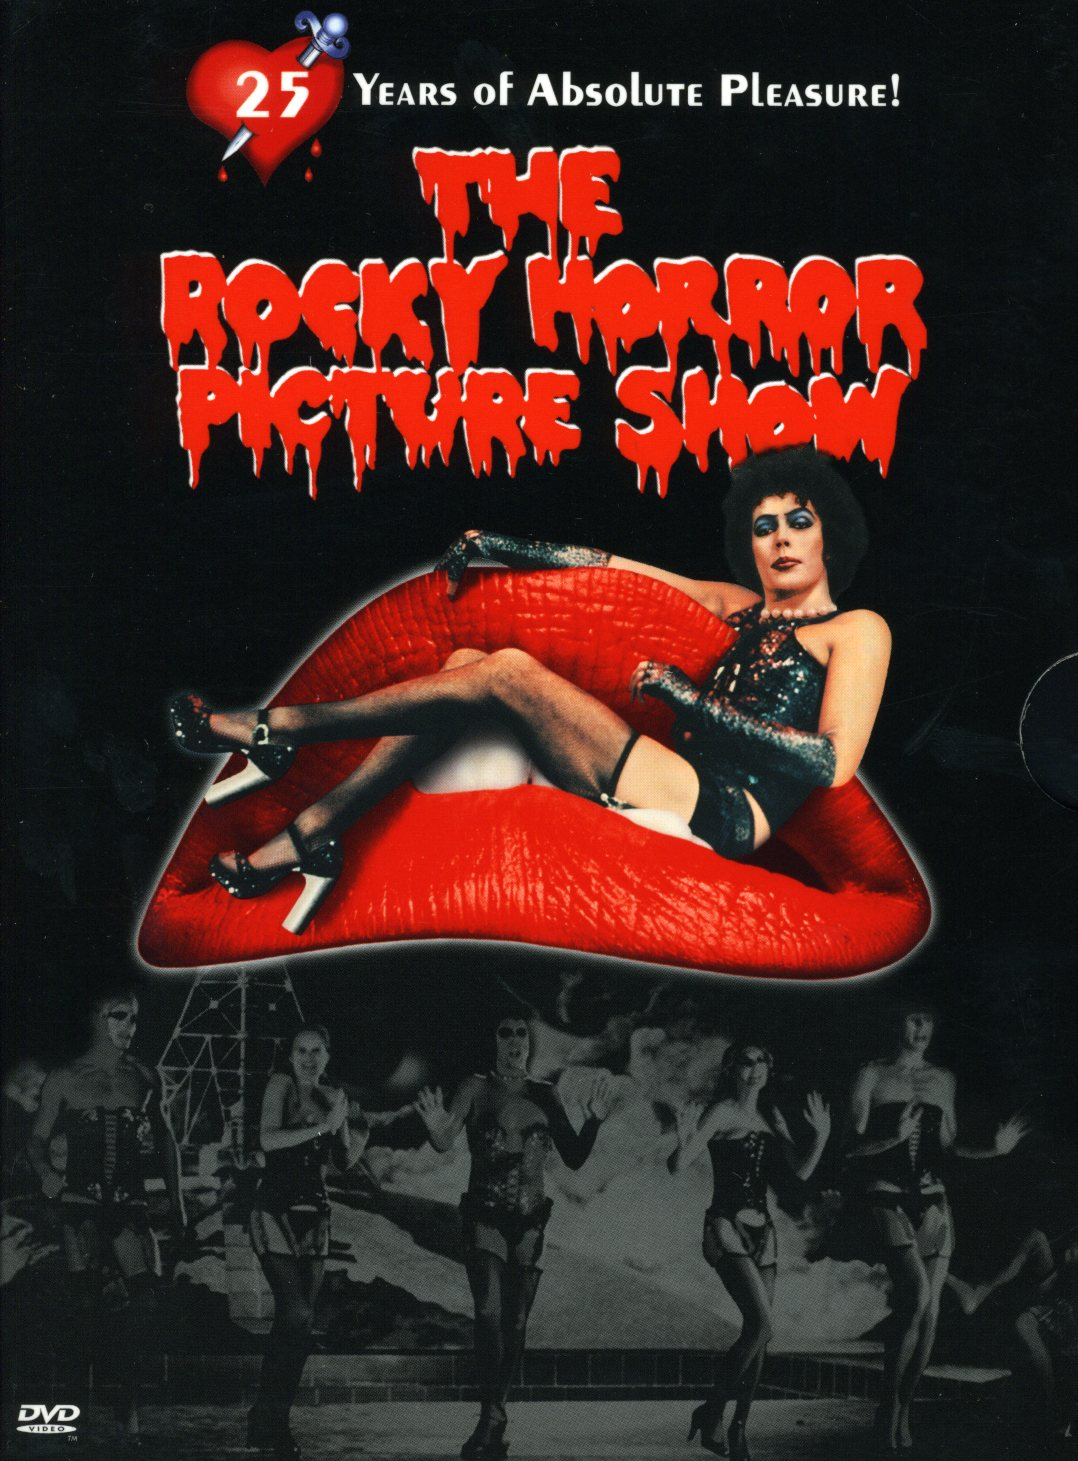 Rocky Horror Picture Show 25th Anniversary Edition (DVD)